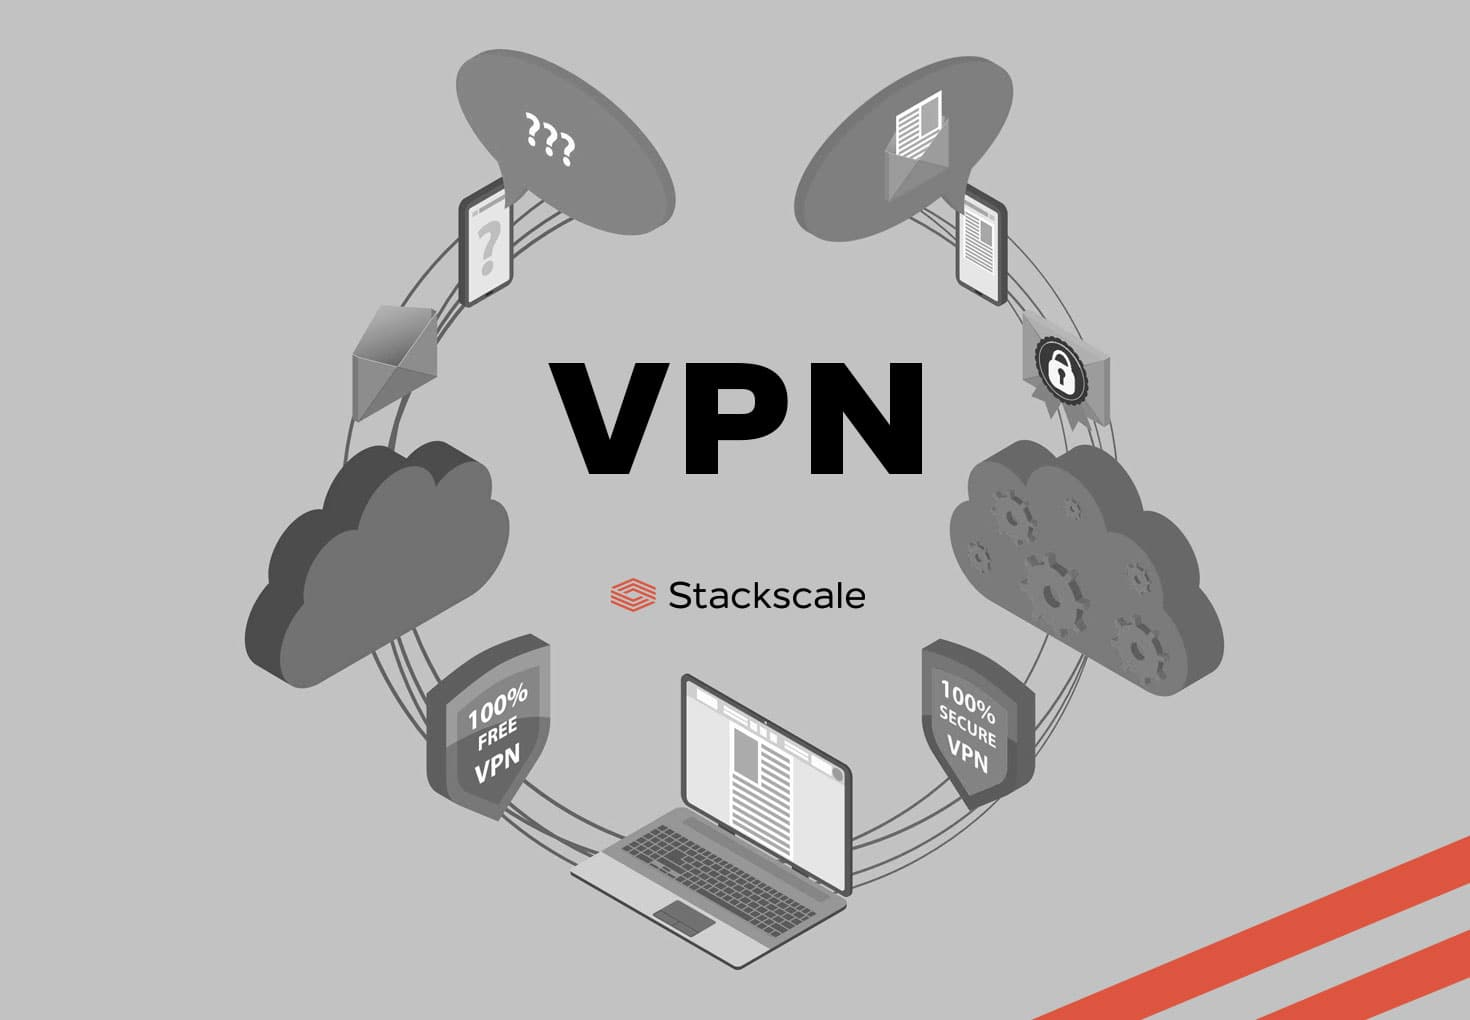 secure connection with VPN